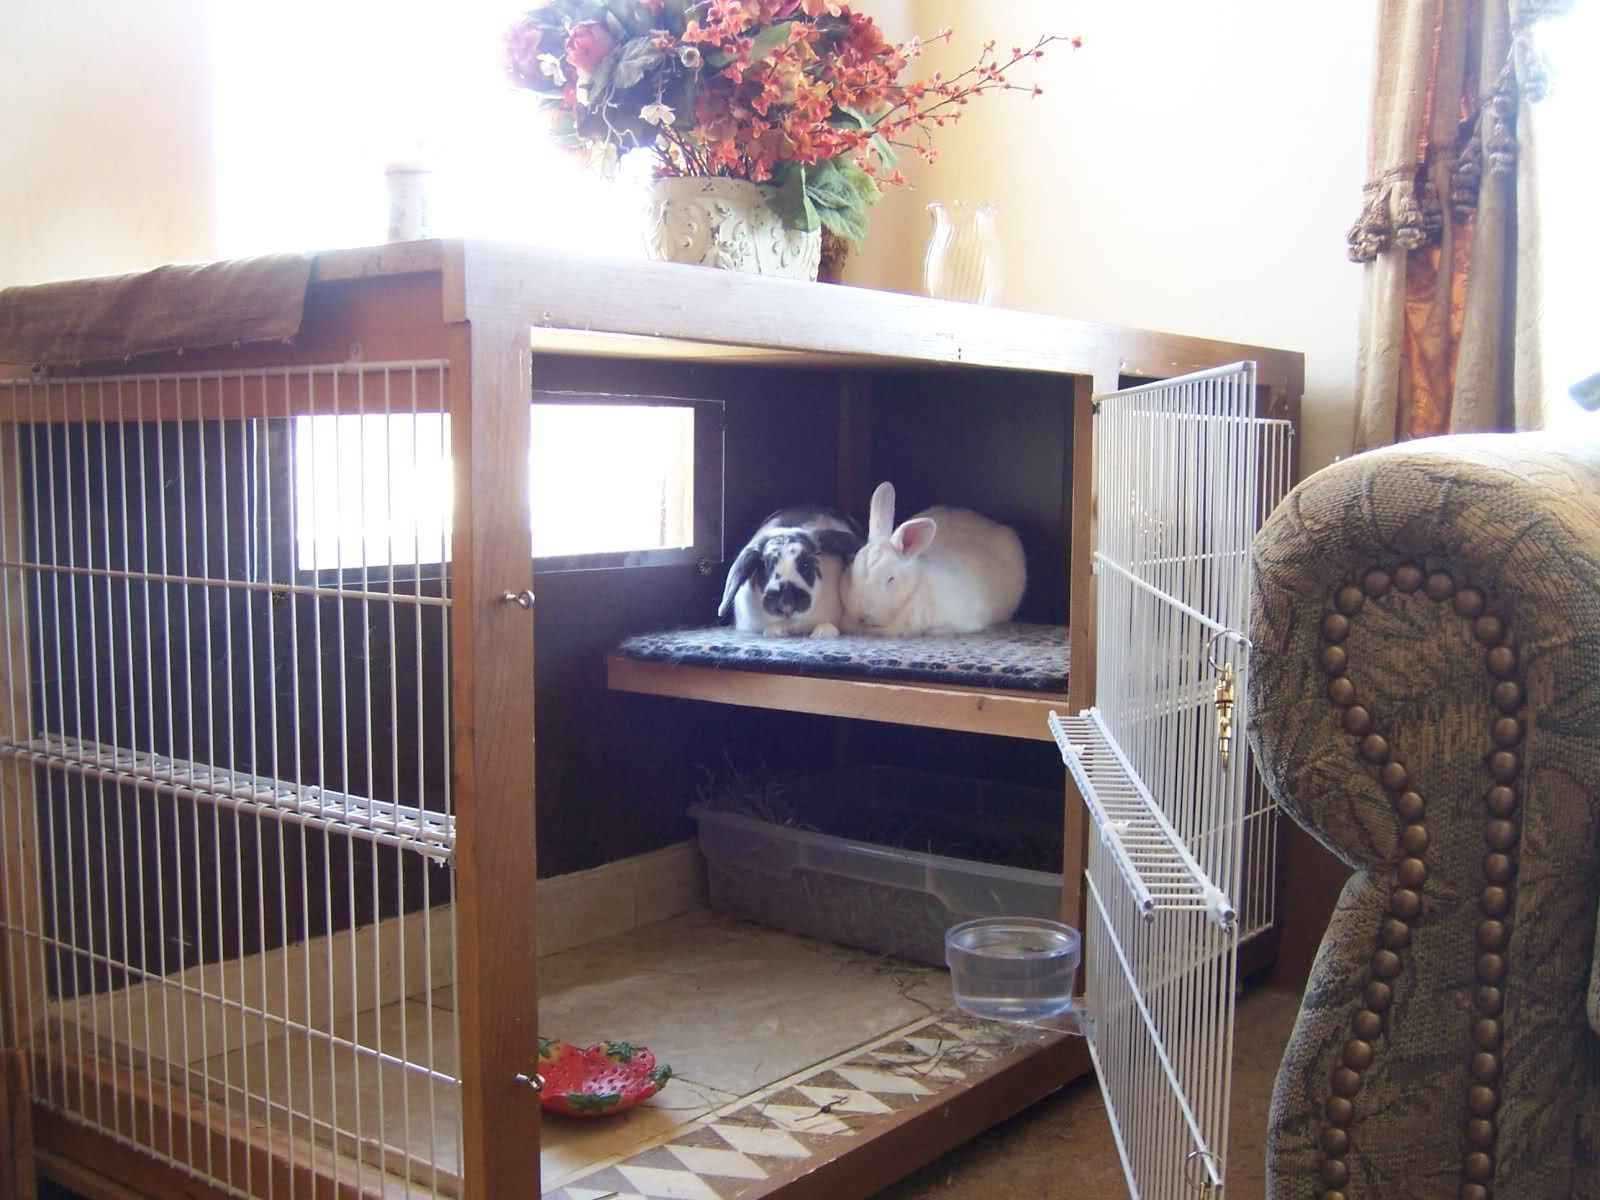 Indoor Rabbit Housing Bunny Approved House Rabbit Toys Snacks